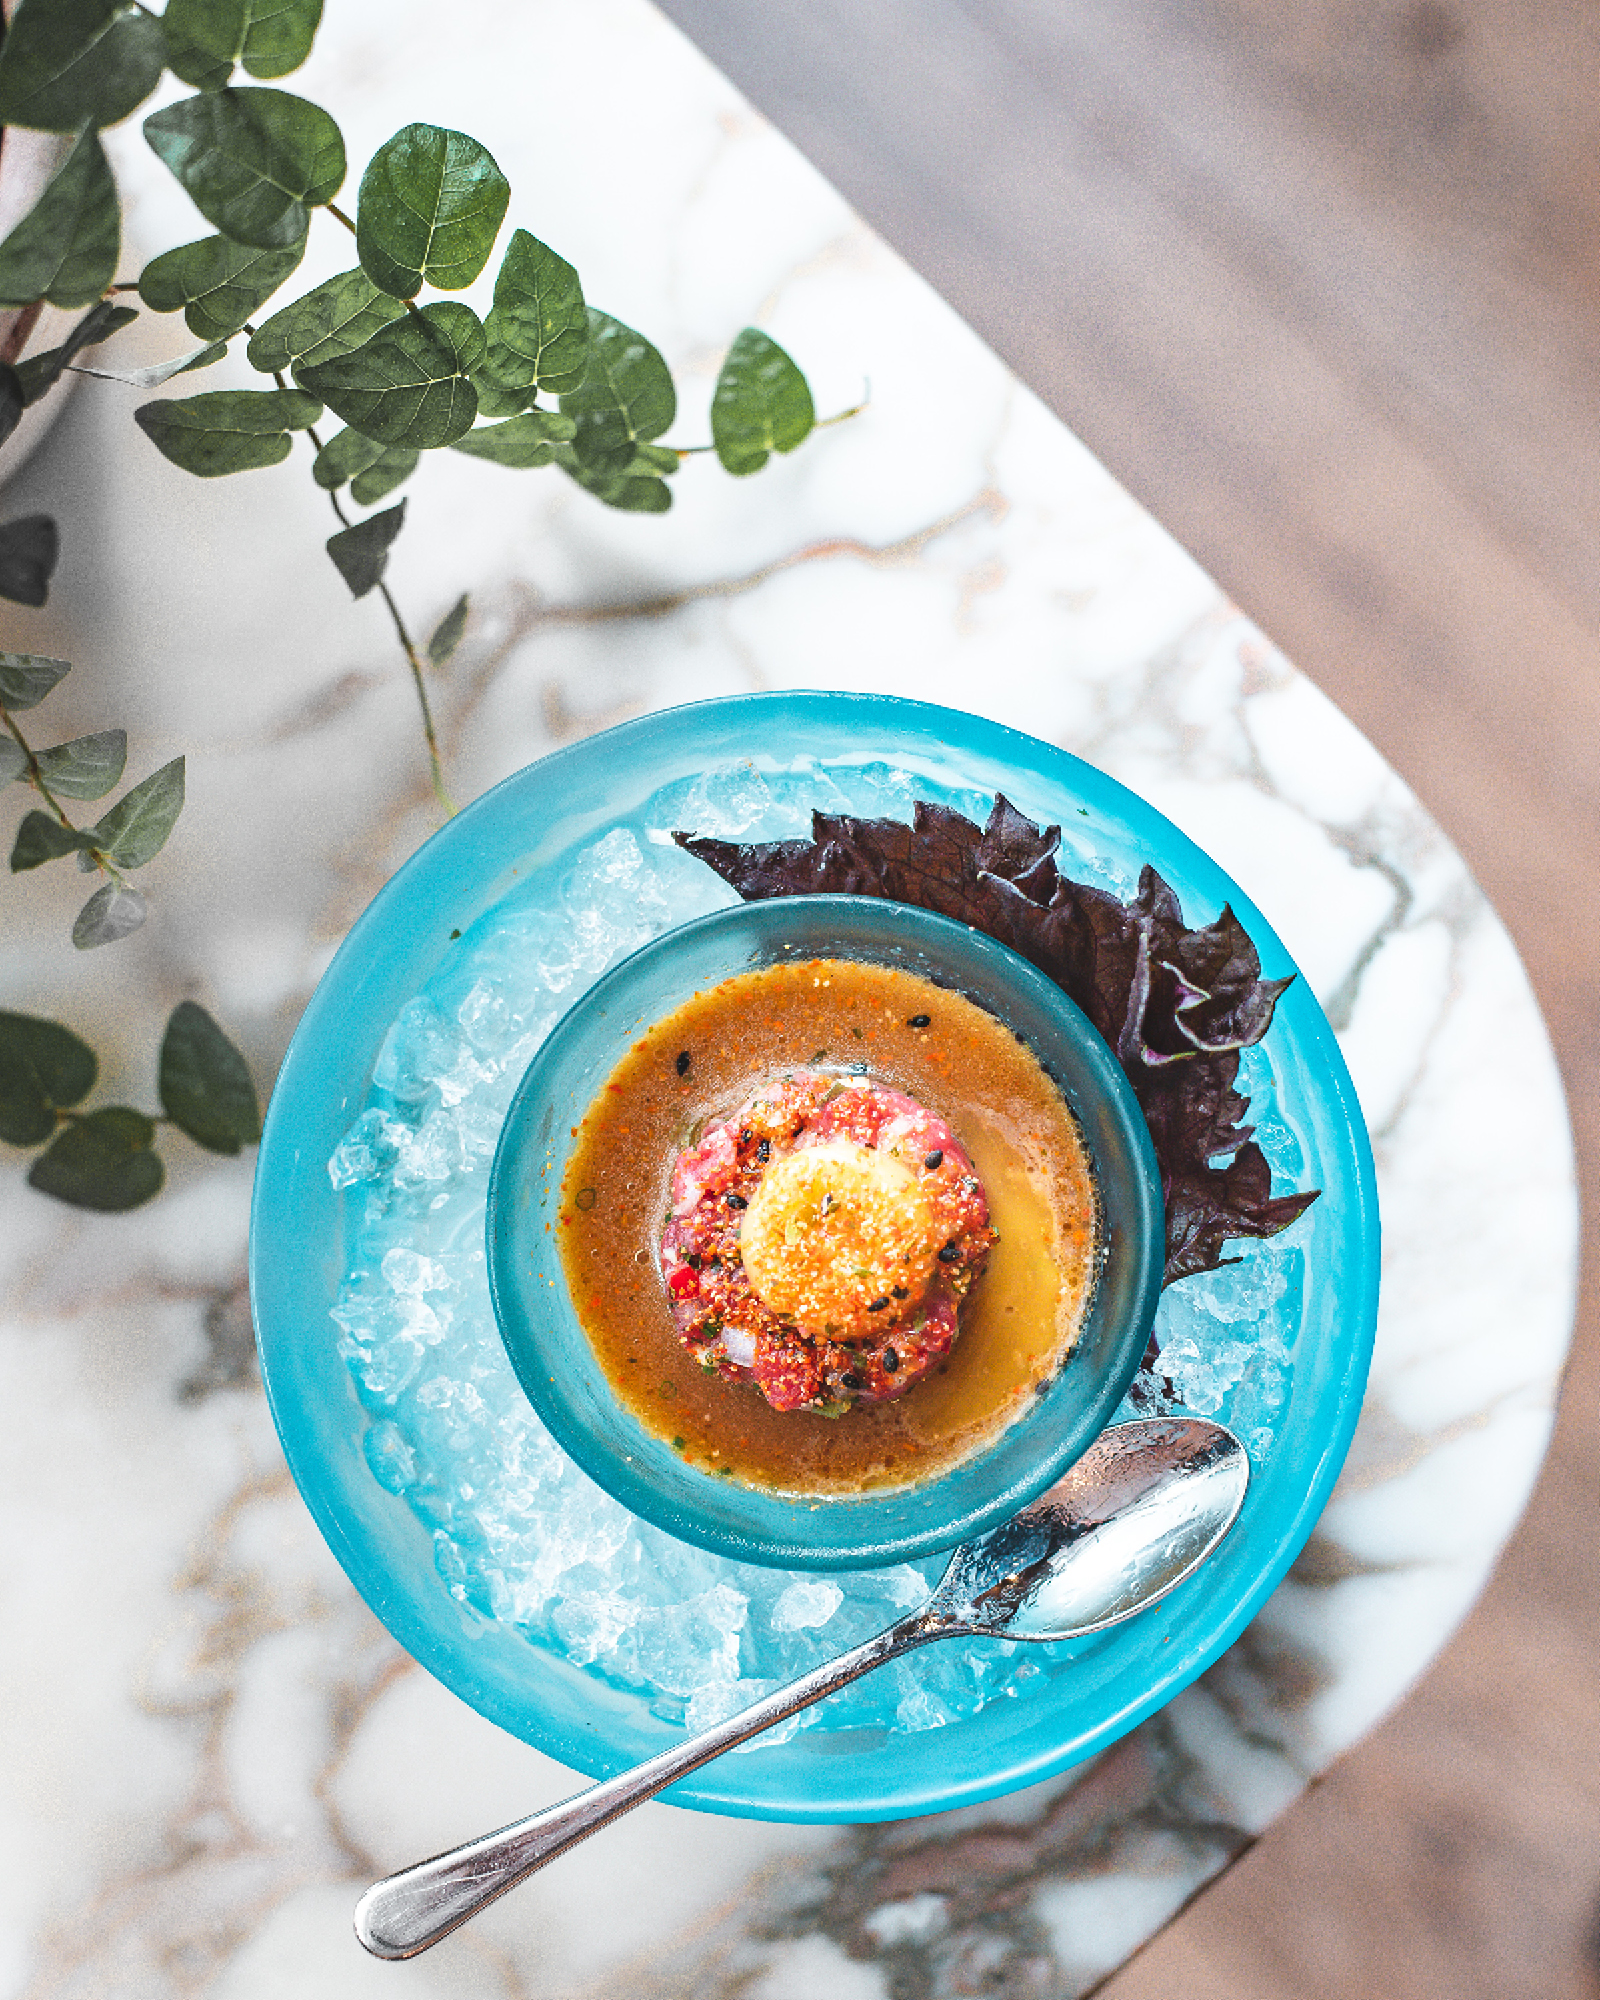 Beef tartare with egg yolk and spicy schichimi soy. Photograph: Em Azodi